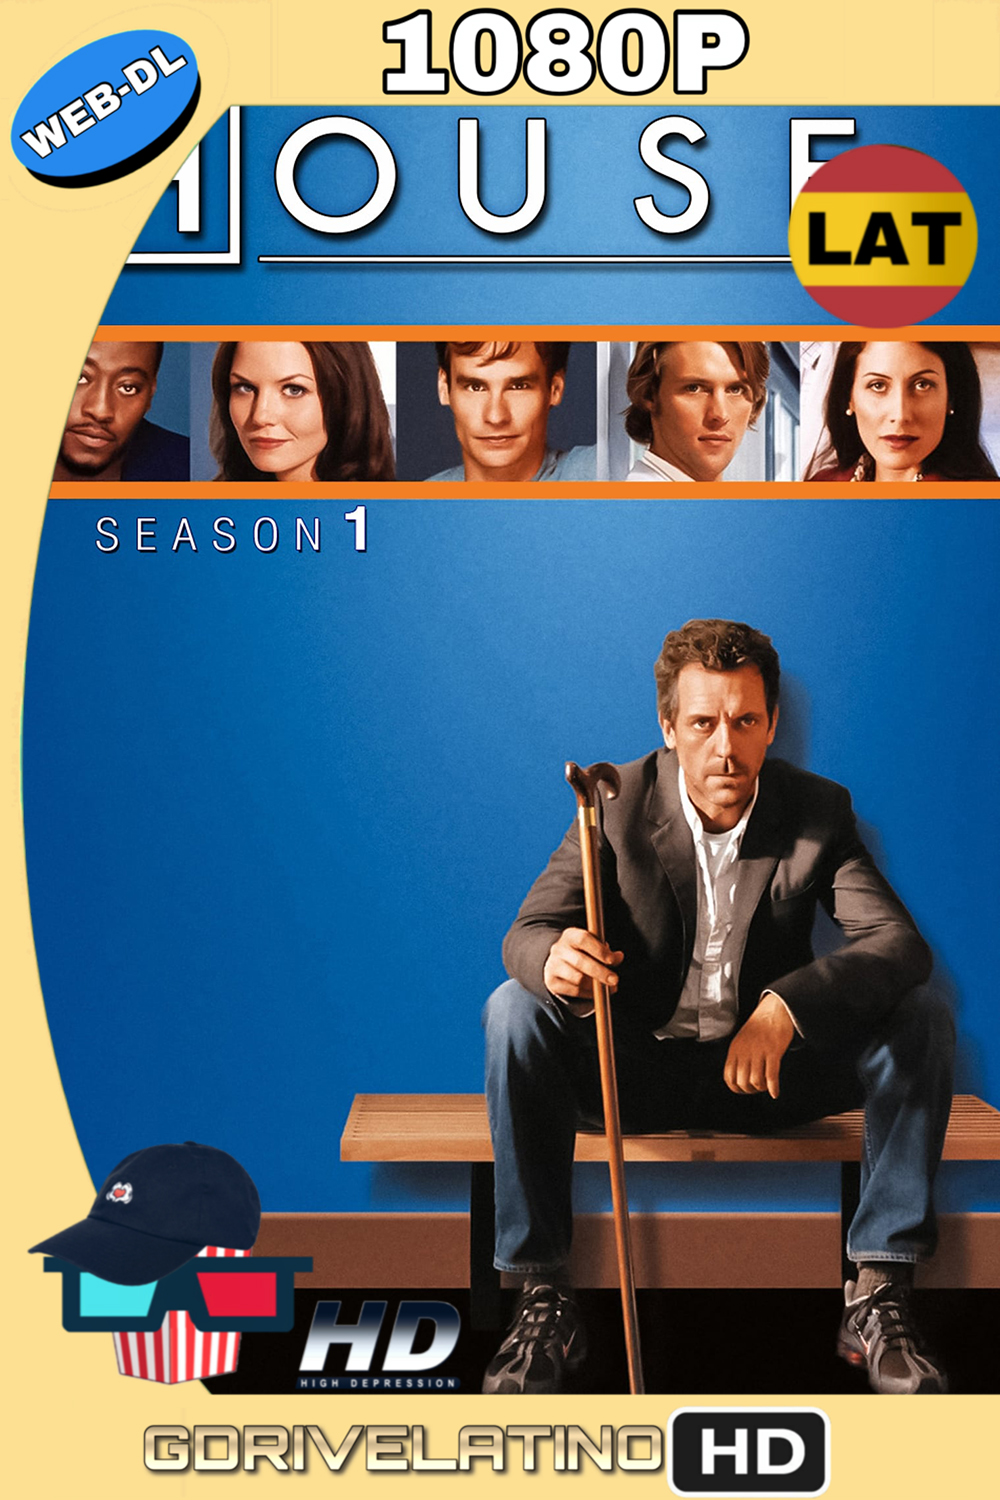 Dr. House Temporada 1 (2004) (22/22) WEB-DL 1080p (Latino-Inglés) MKV